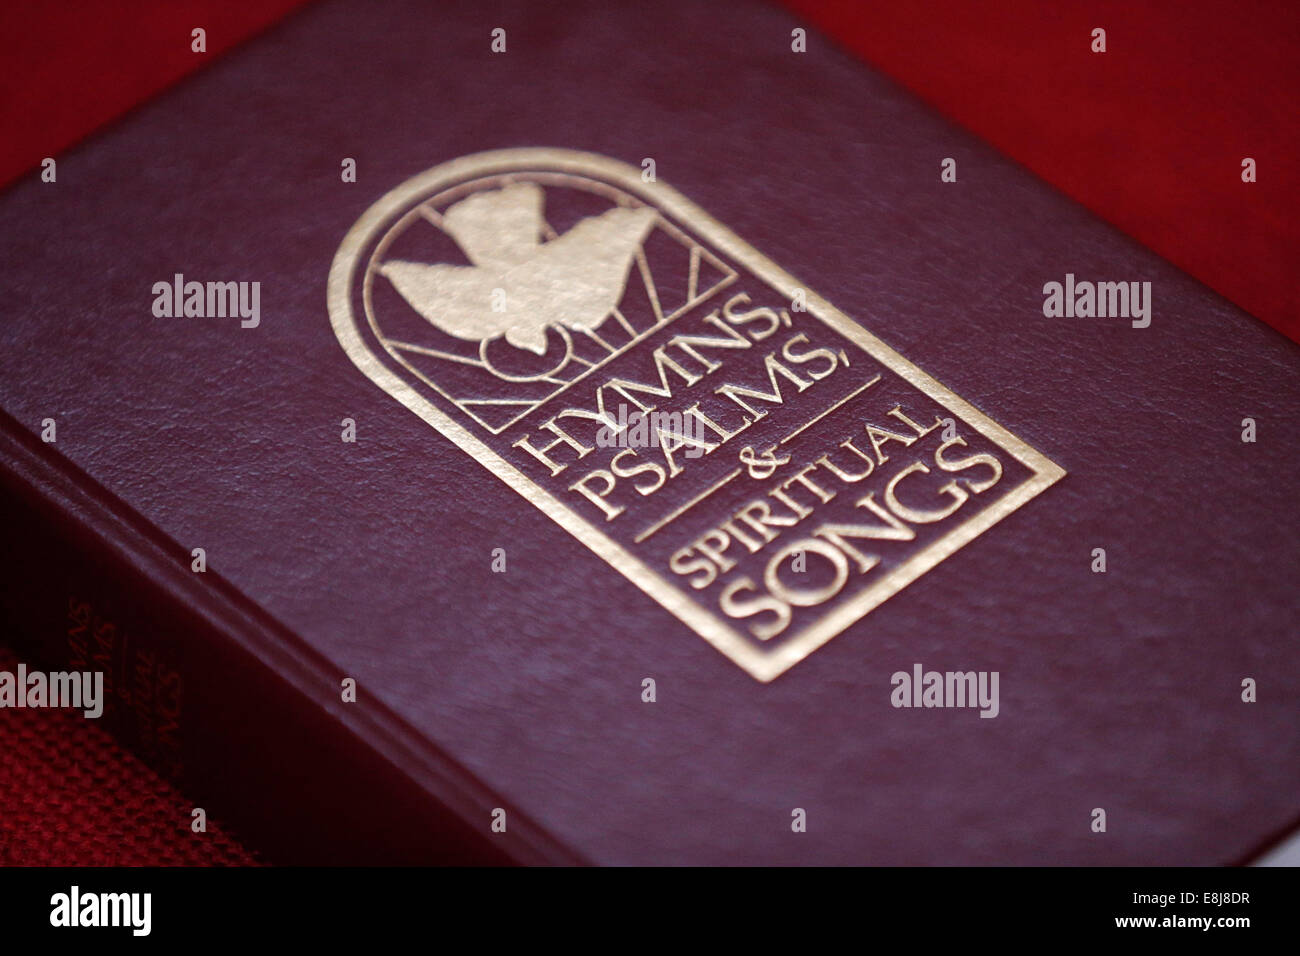 Hymns, psalms and spiritual songs. - Stock Image